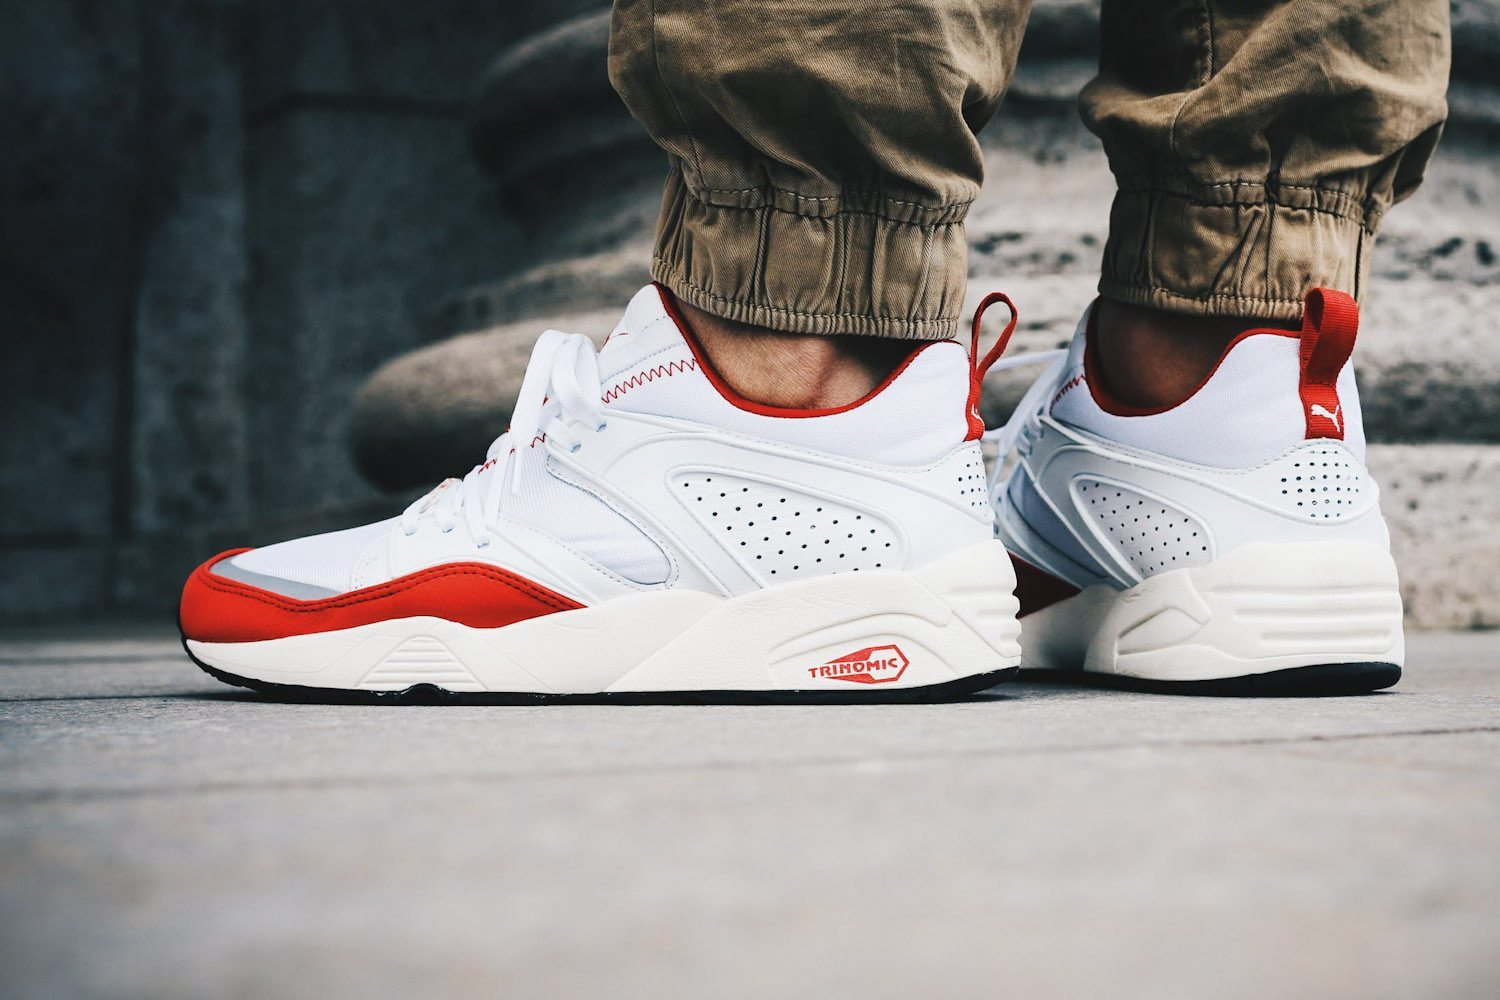 PUMA Primary Pack Part II 15